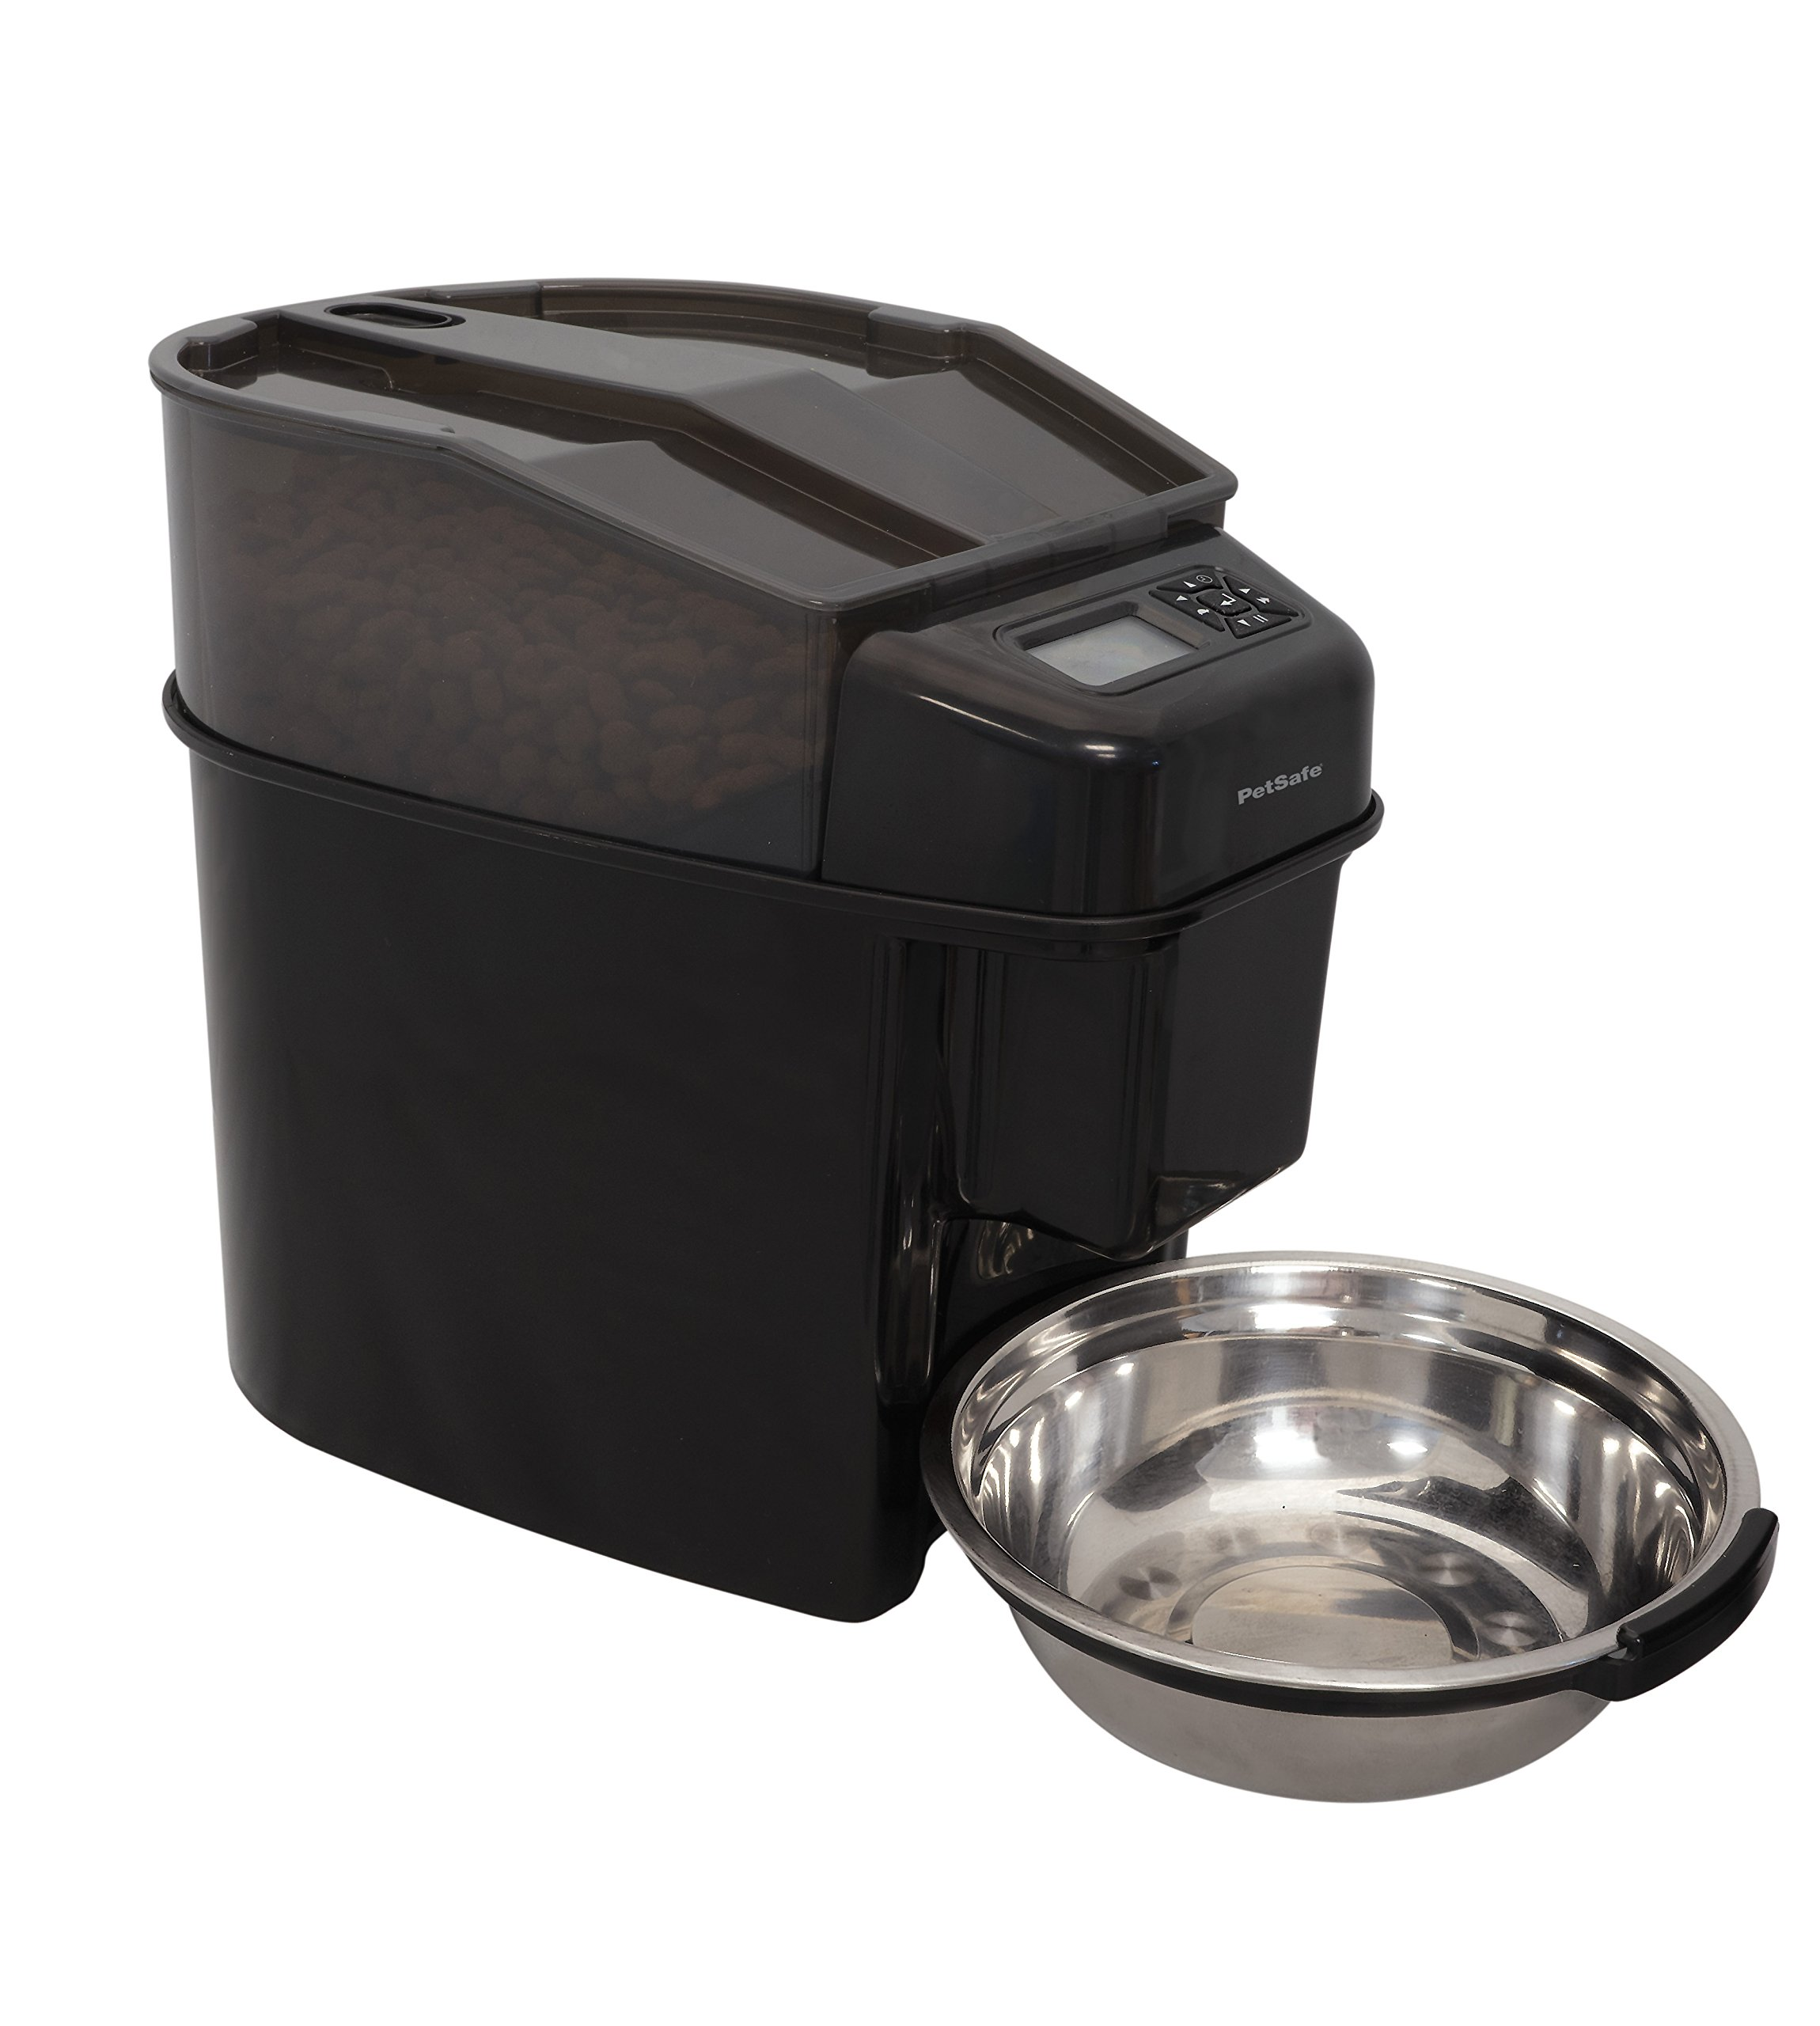 PetSafe Healthy Pet Simply Feed Automatic Feeder One Size Fits All